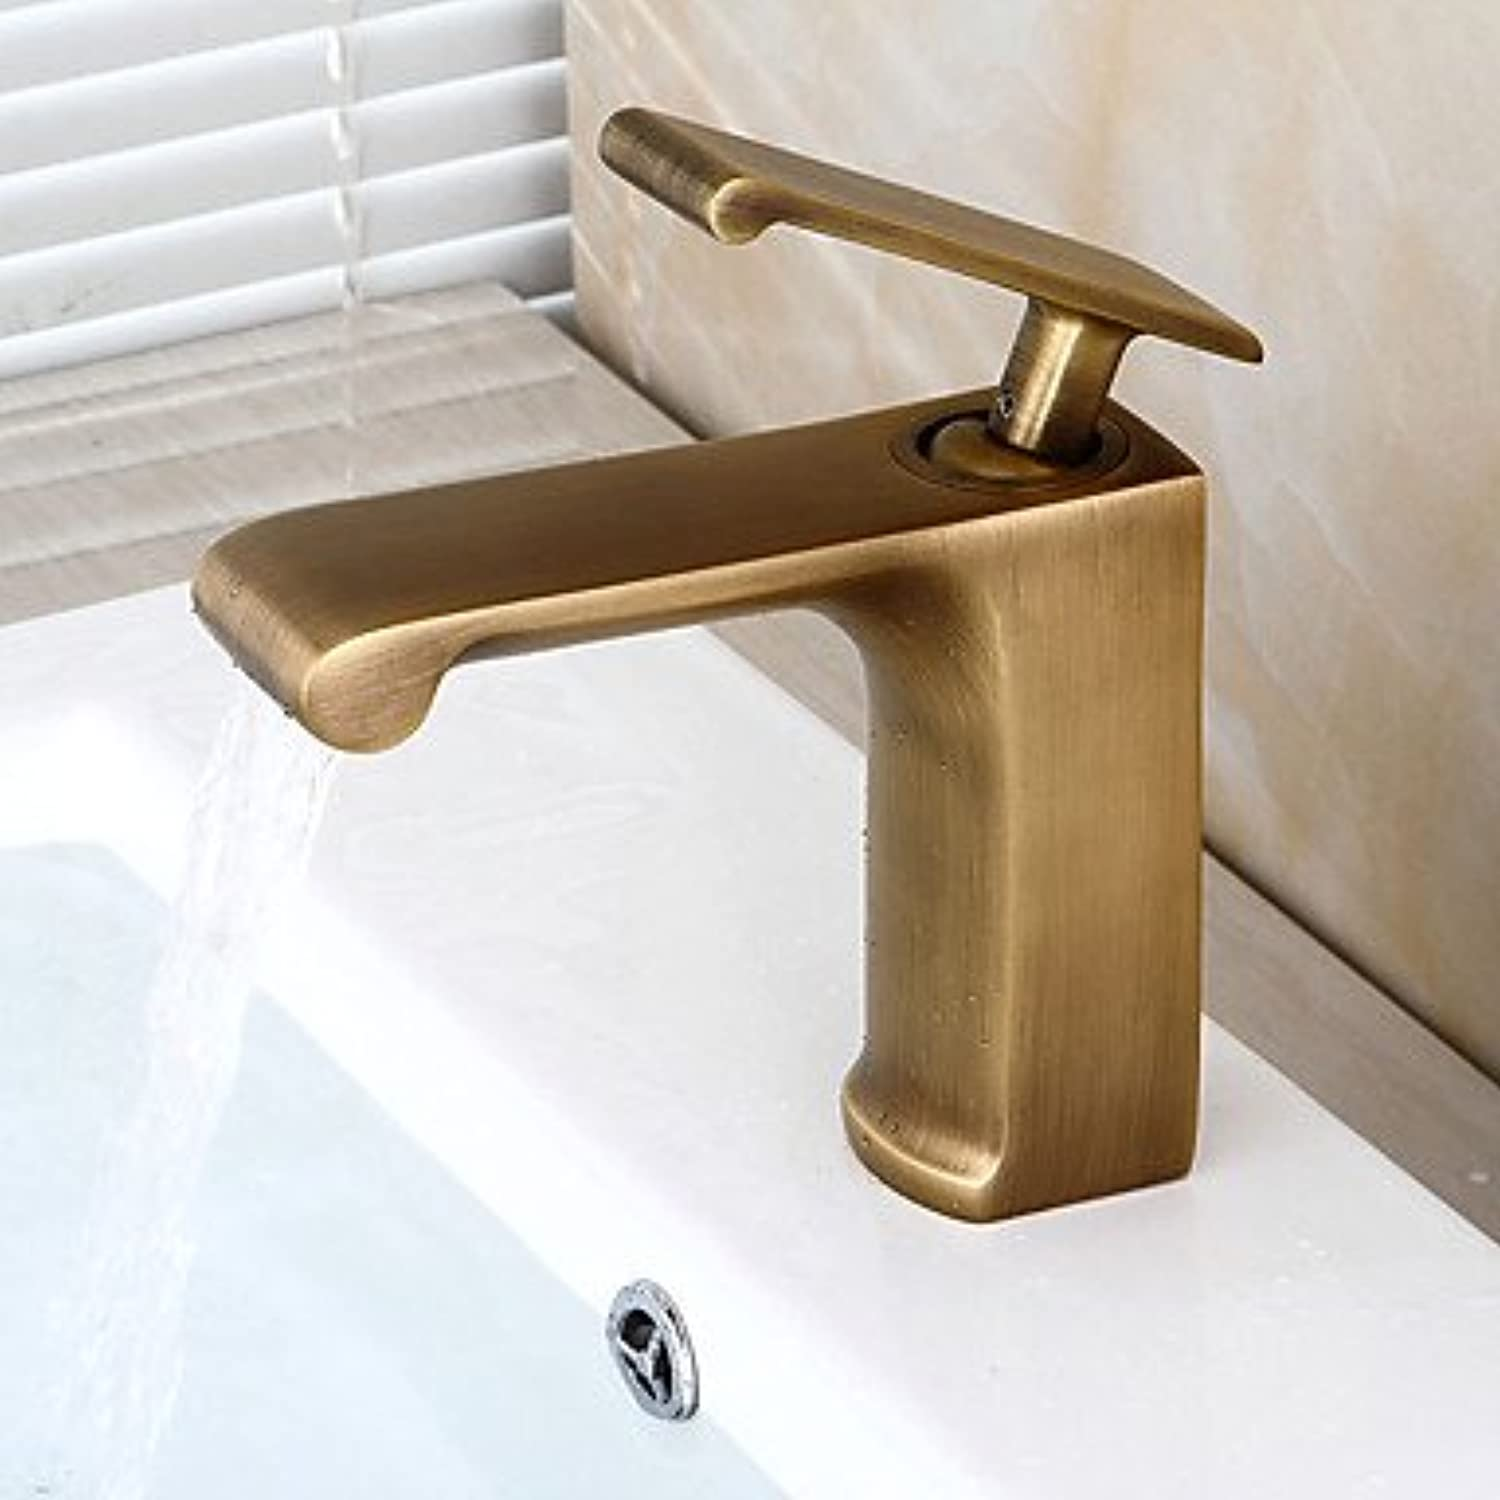 ZLL ?ìTraditional Centerset Ceramic Valve Single Handle One Hole with Antique Brass Bathroom Sink Faucet , 58 x 8 cm